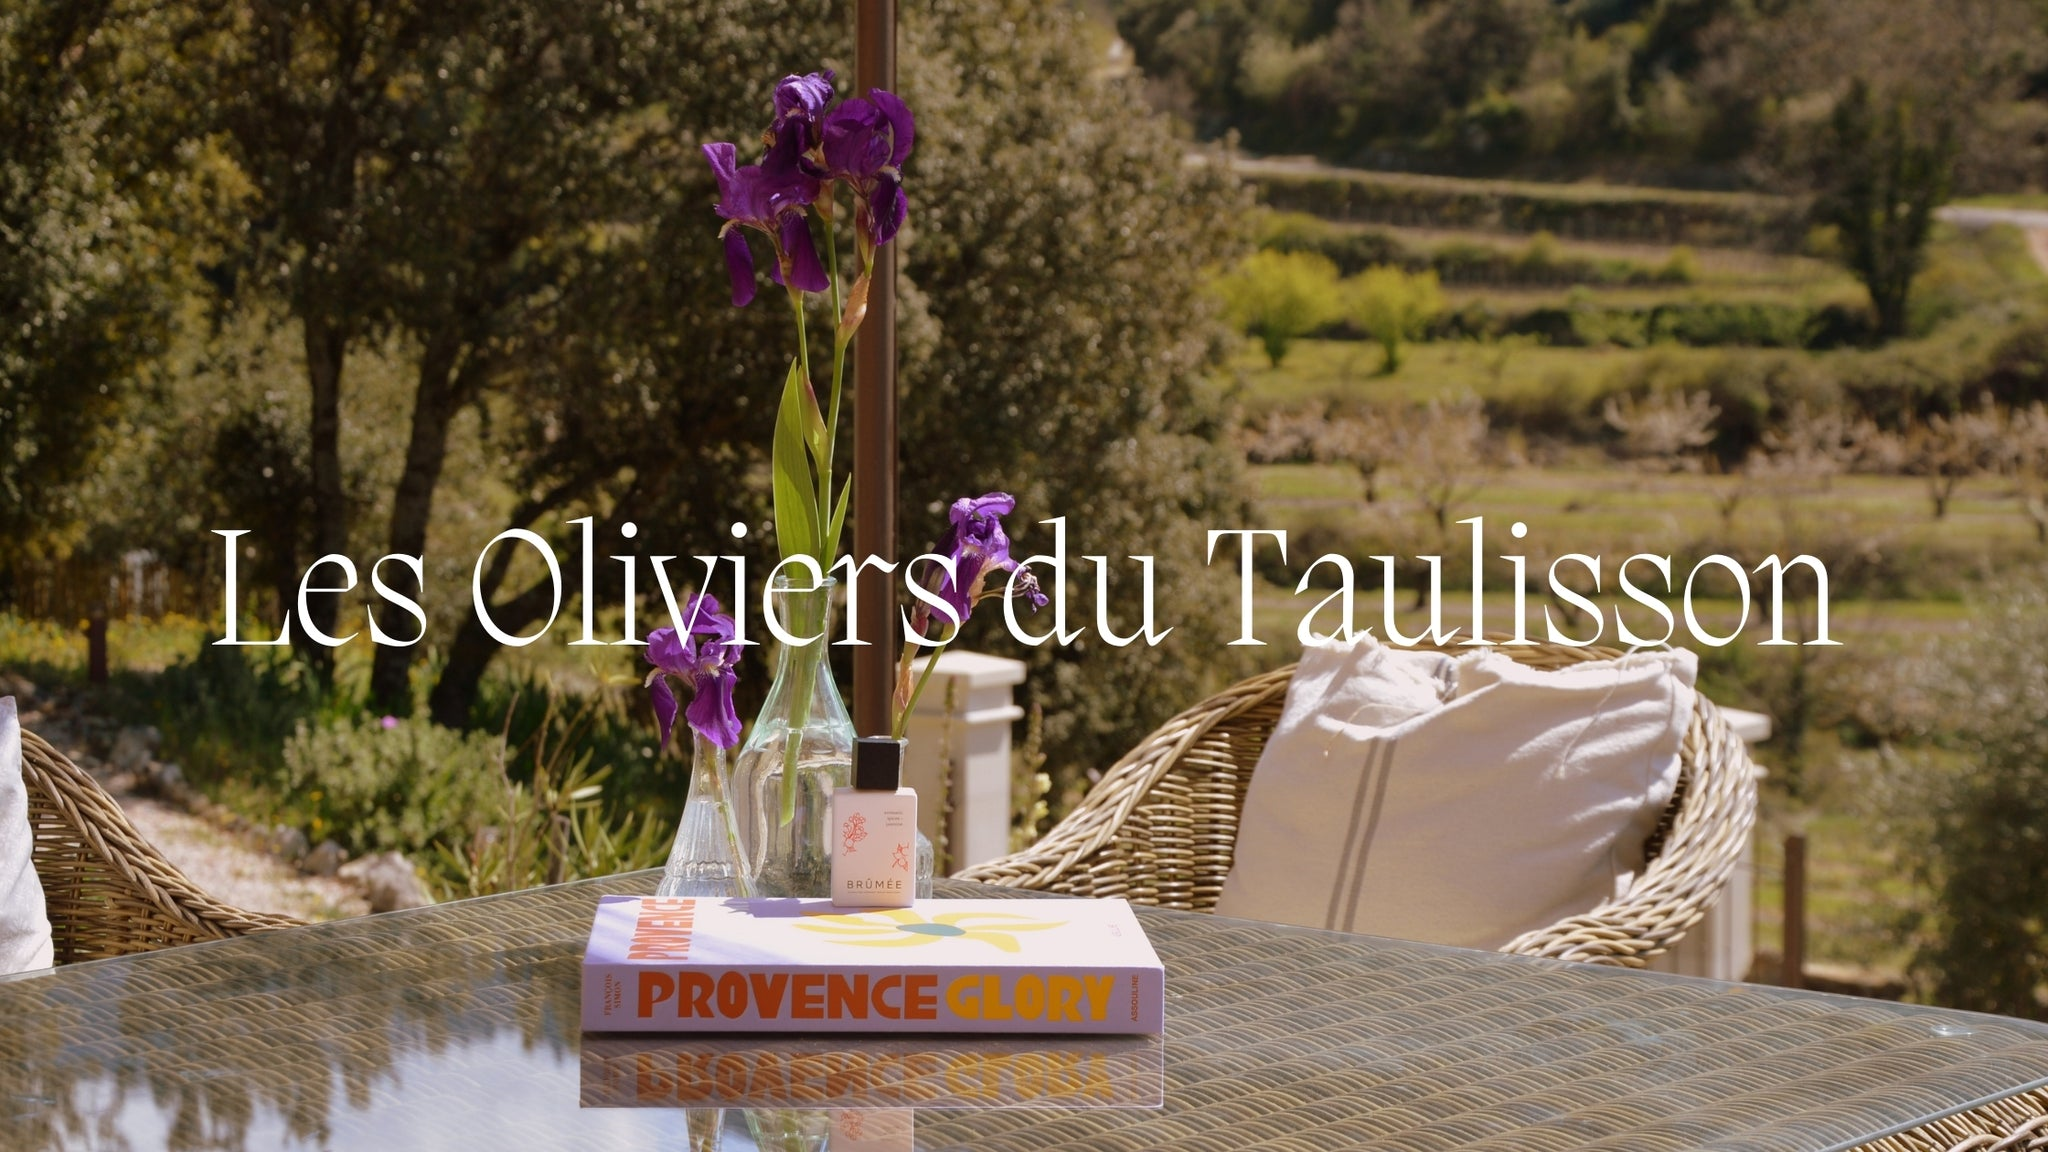 image of les Oliviers du Taulisson with the name written on it